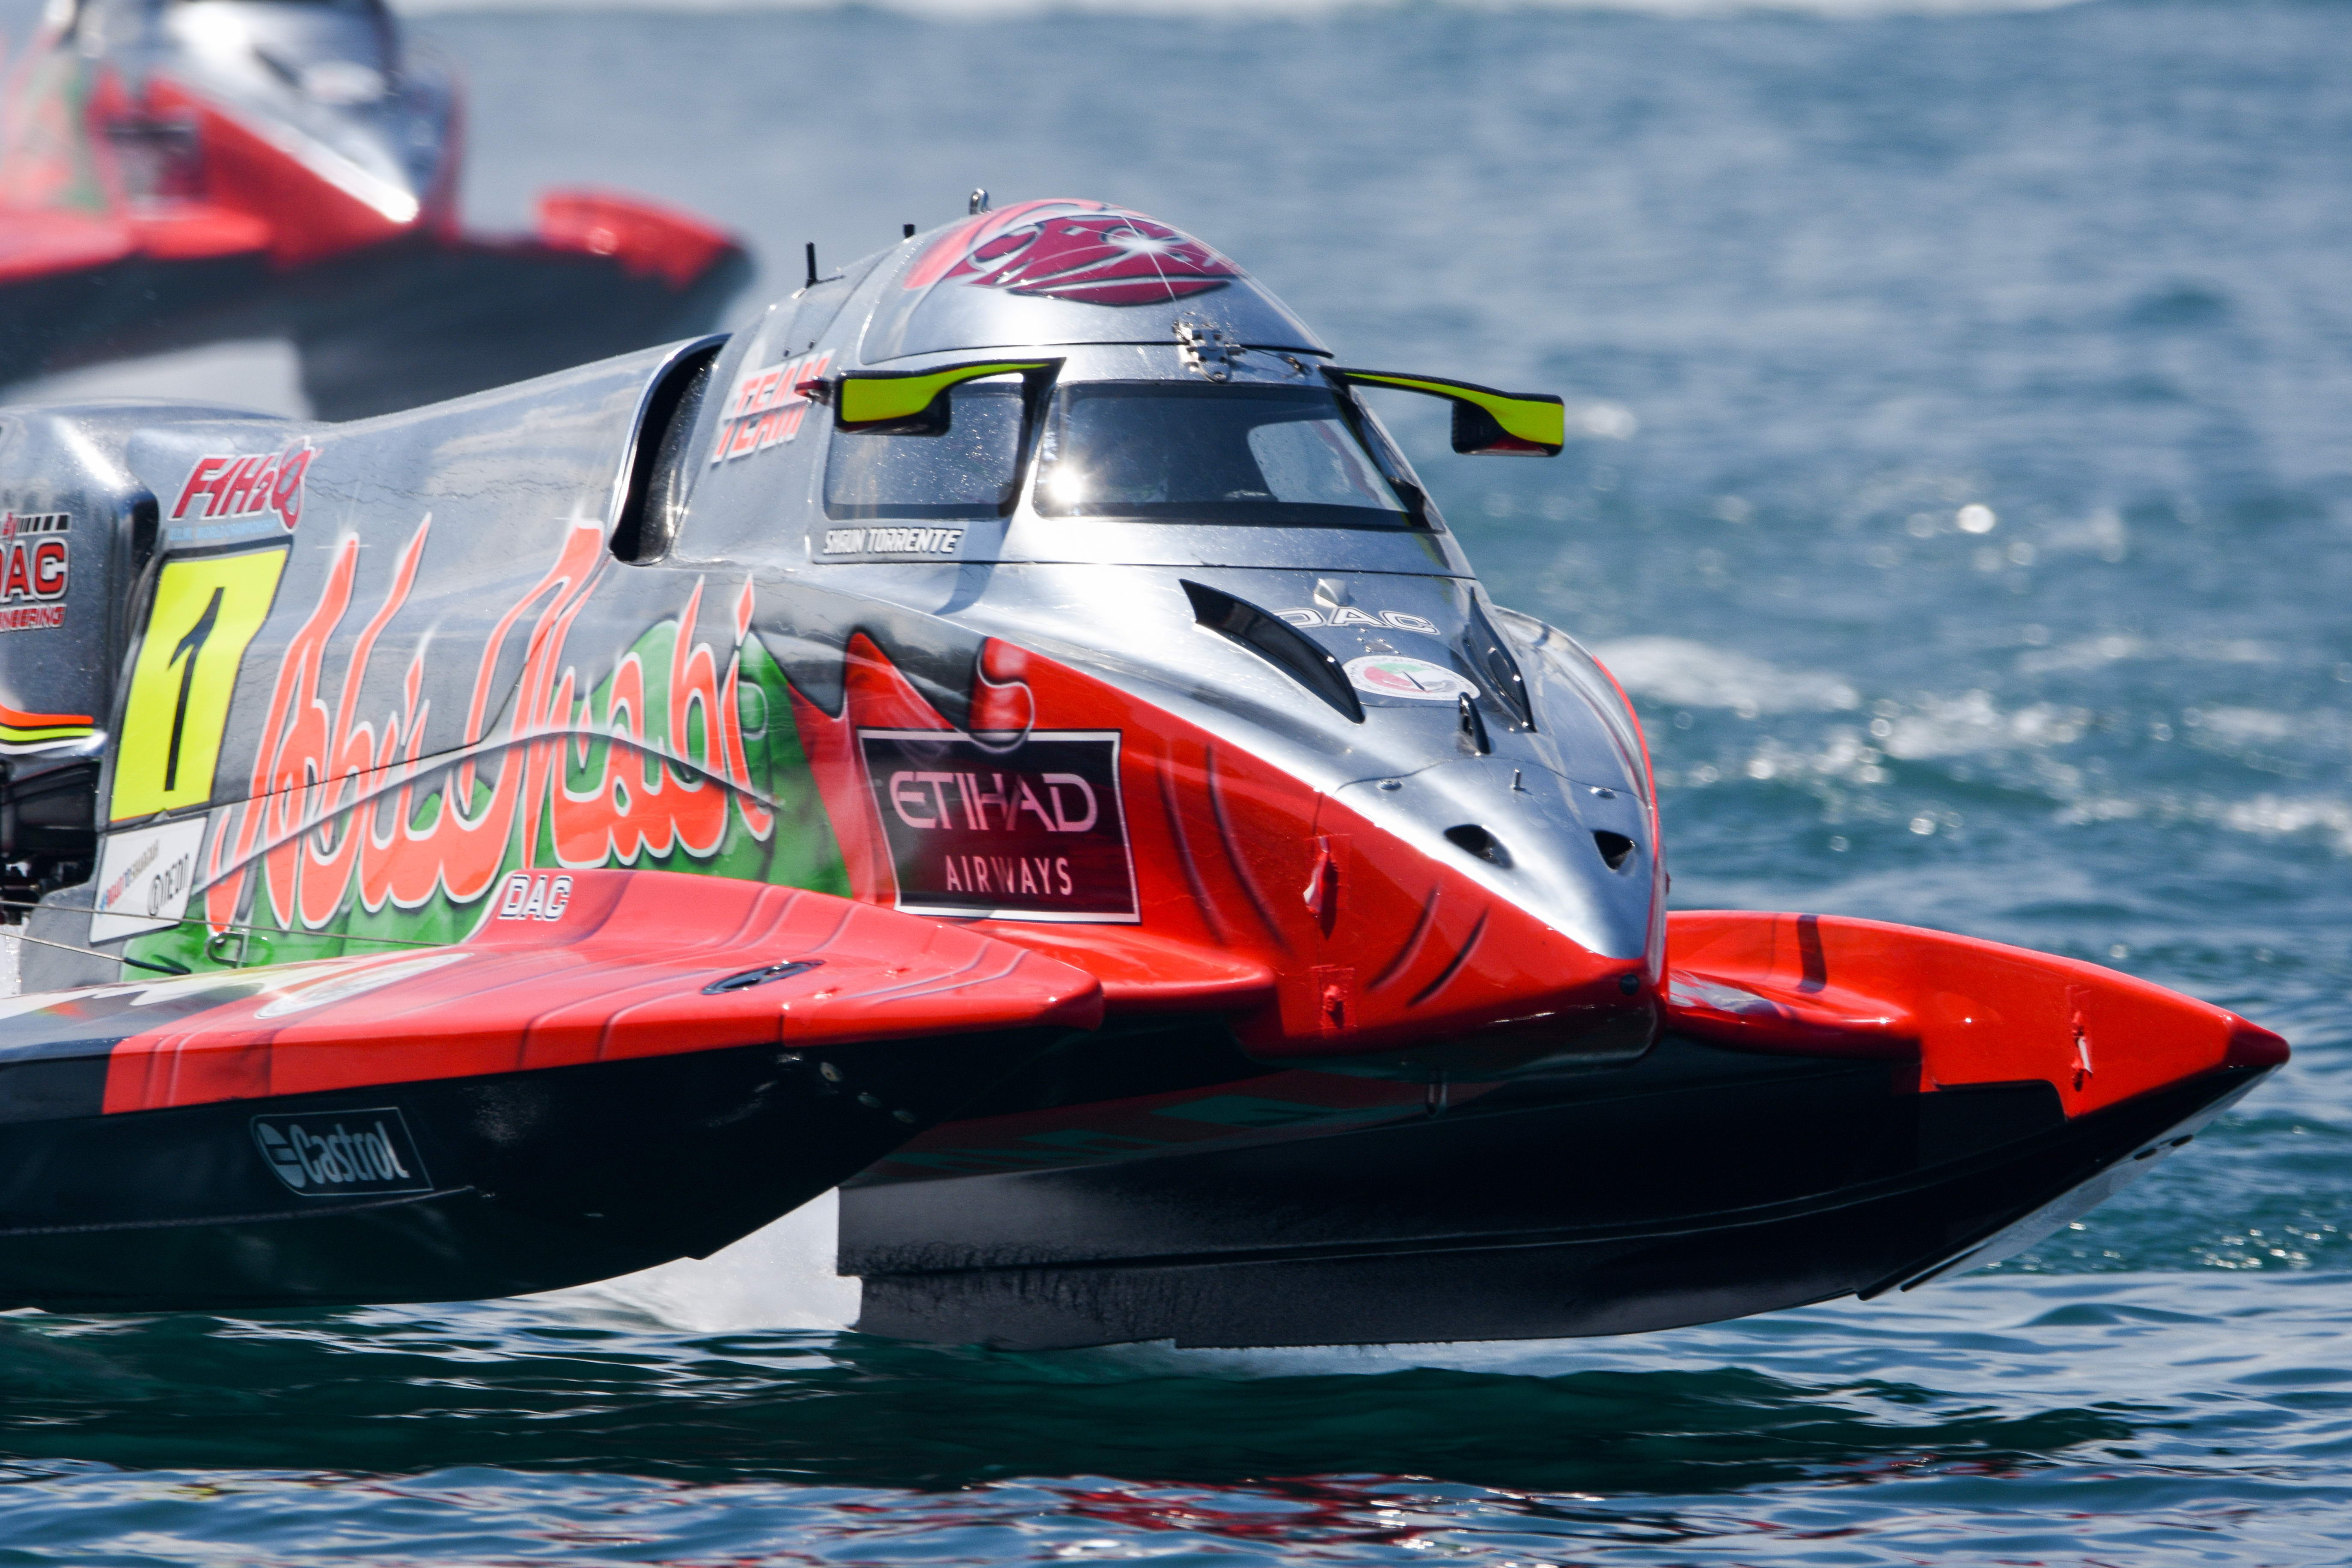 F1H2O UIM World Championship: XIAMEN DOUBLE HEADER WILL BE A 'DEFINING WEEKEND' IN TITLE RACE